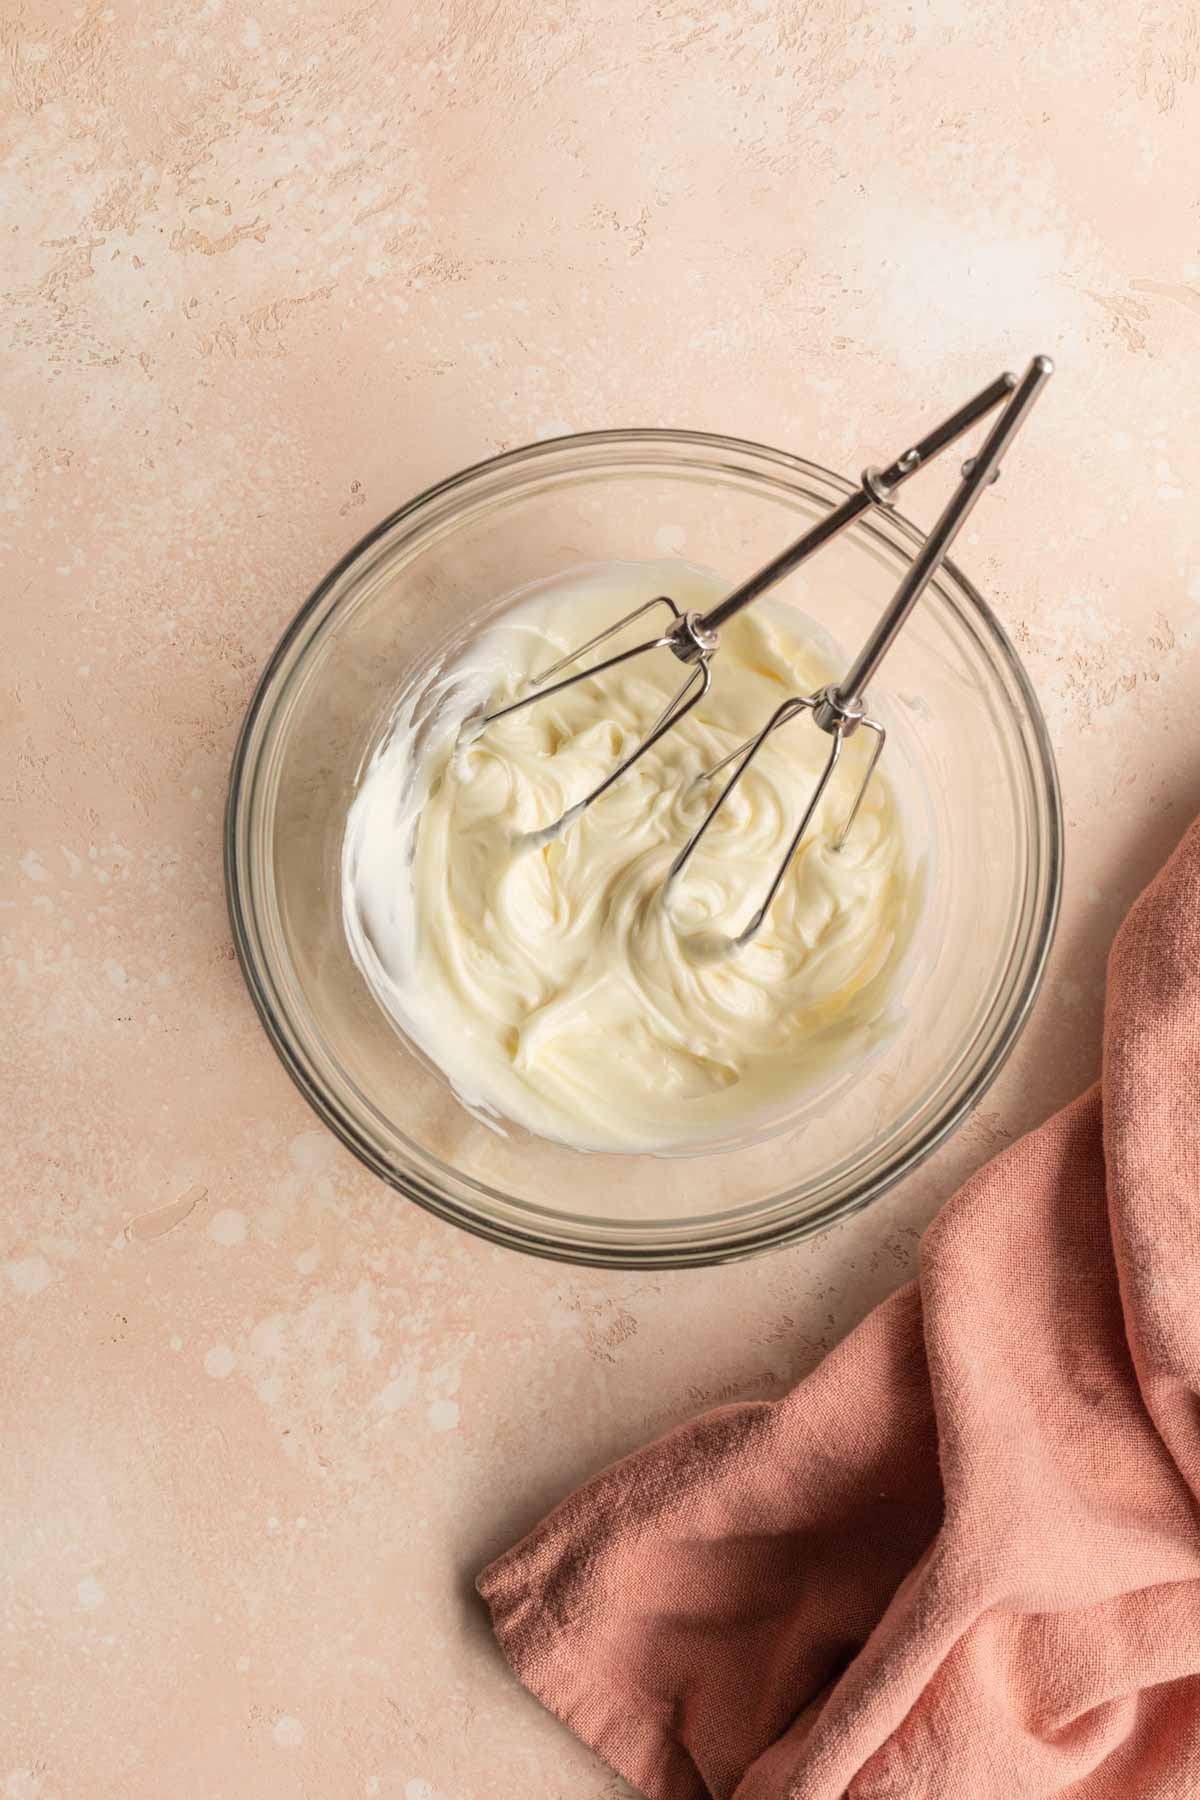 Cream cheese frosting in a glass bowl.